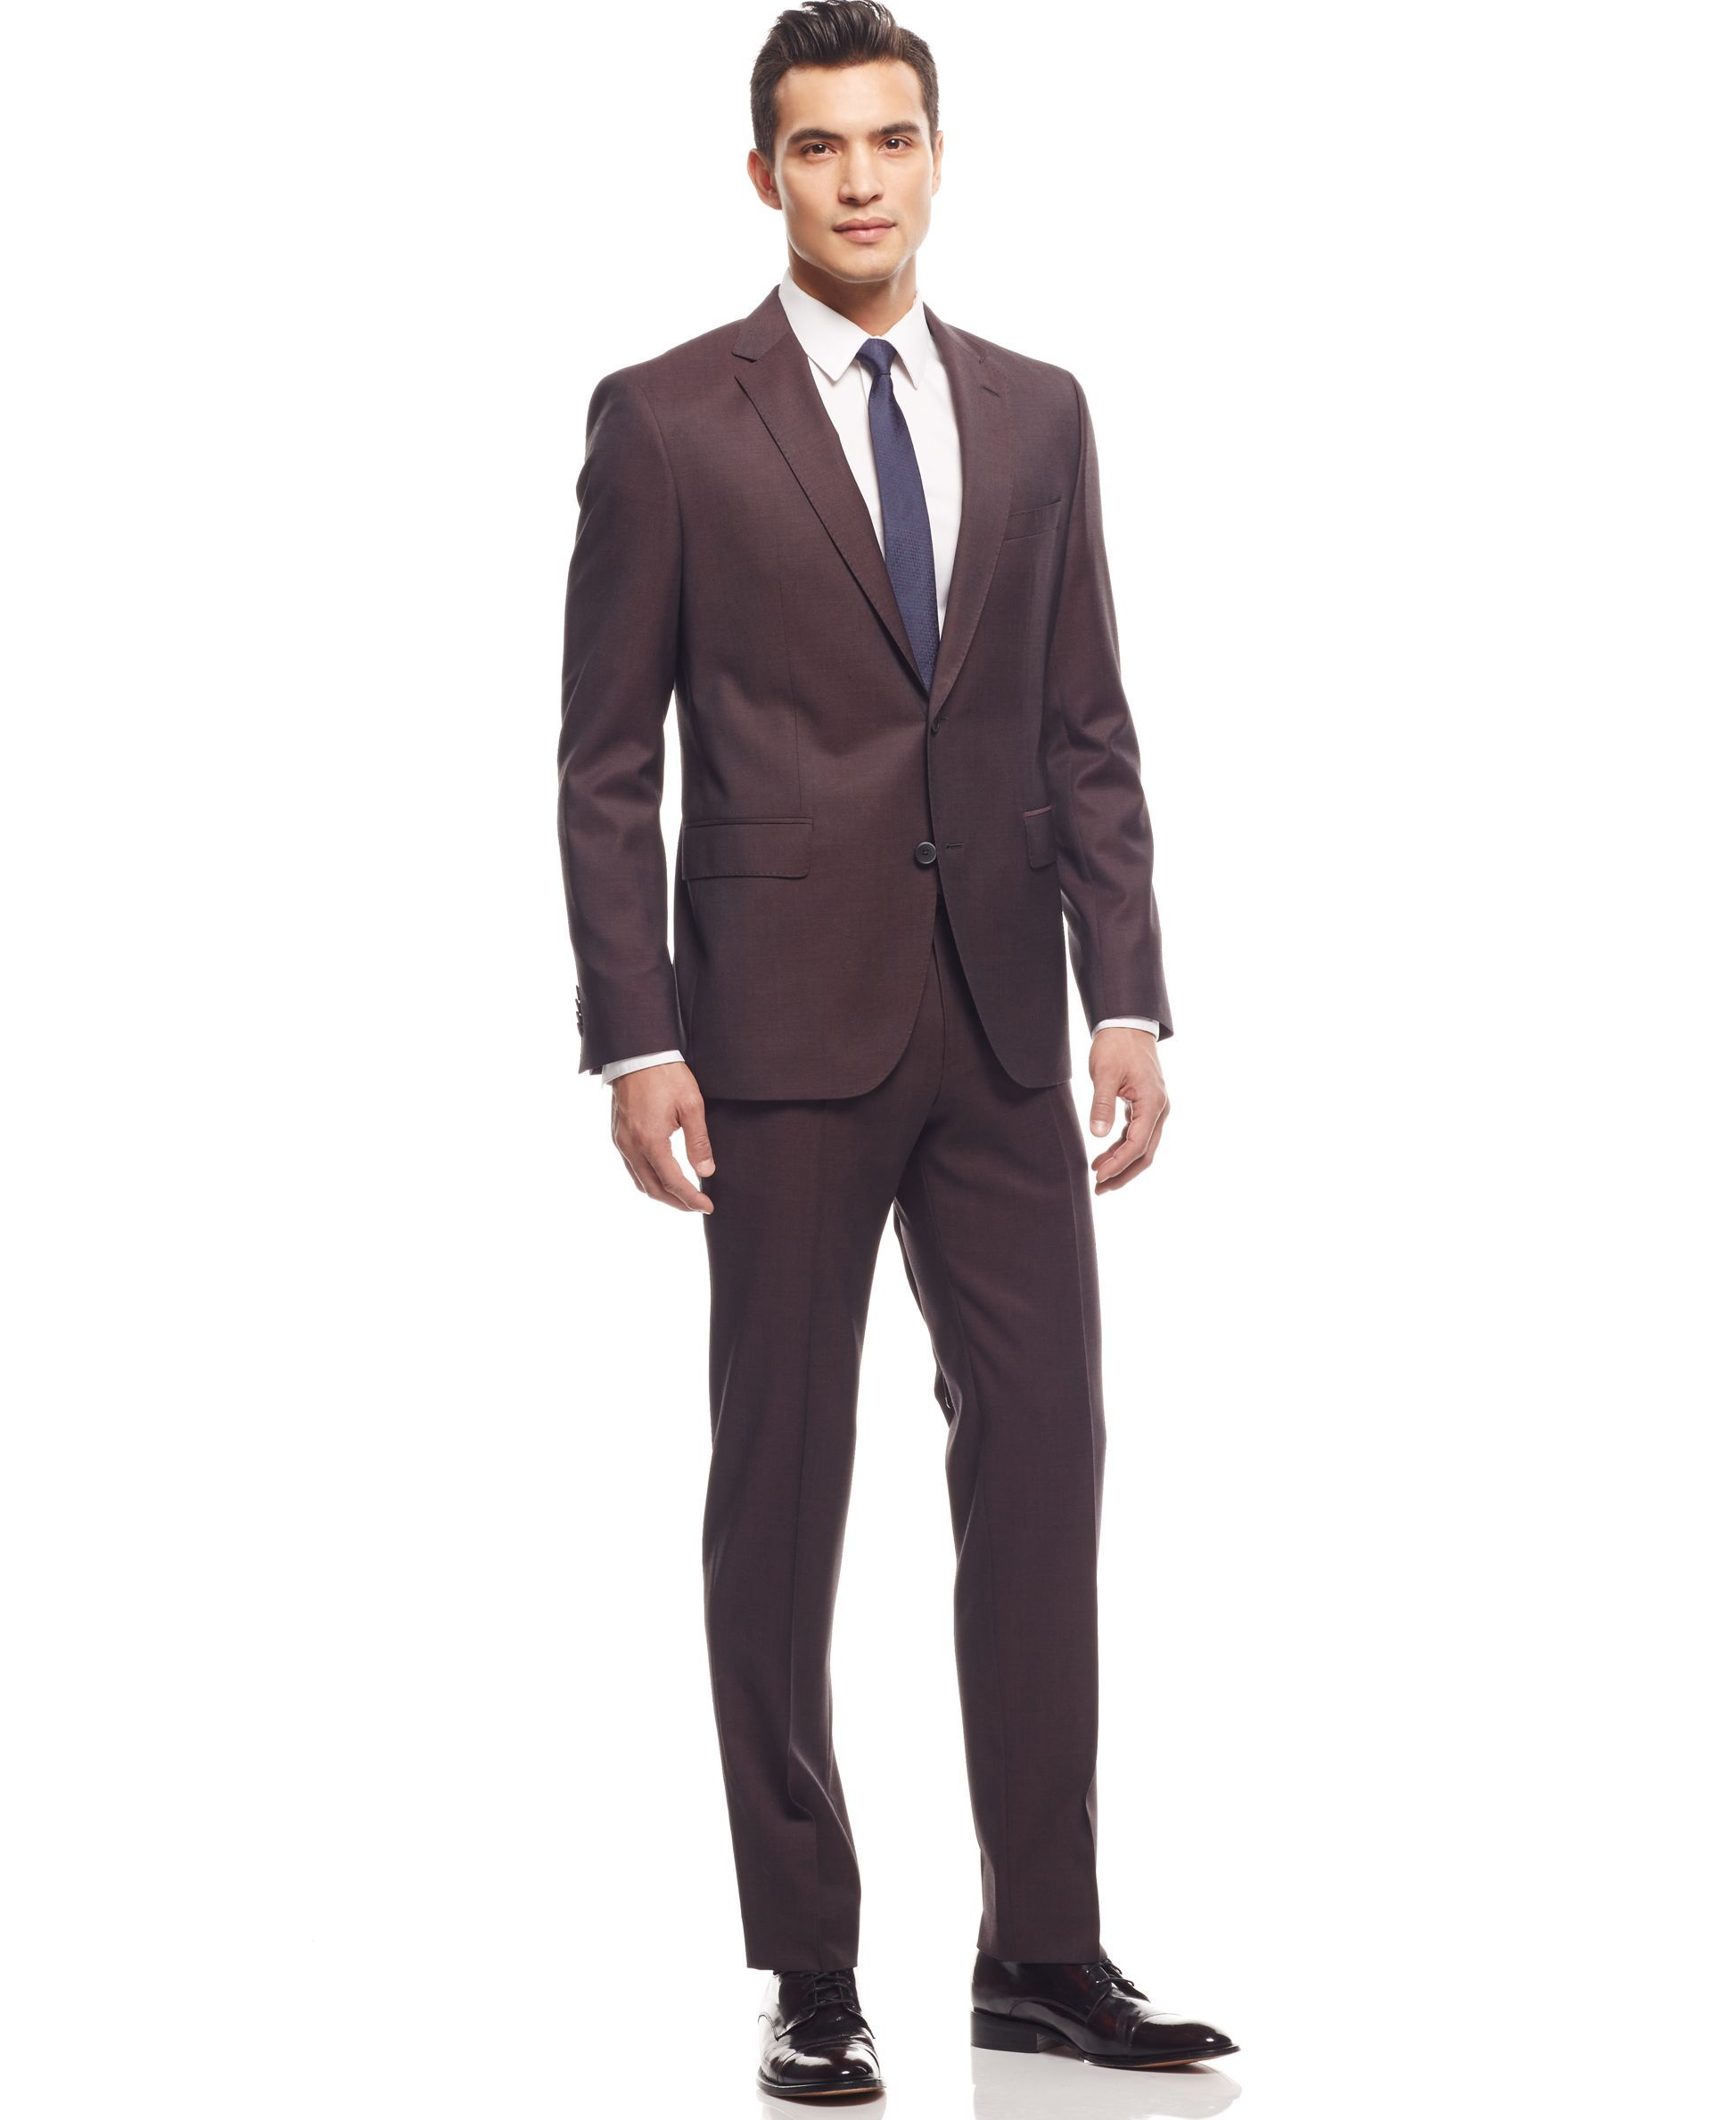 BOSS by Hugo Boss Burgundy Suit - Suits & Tuxedos - Men - Macy's